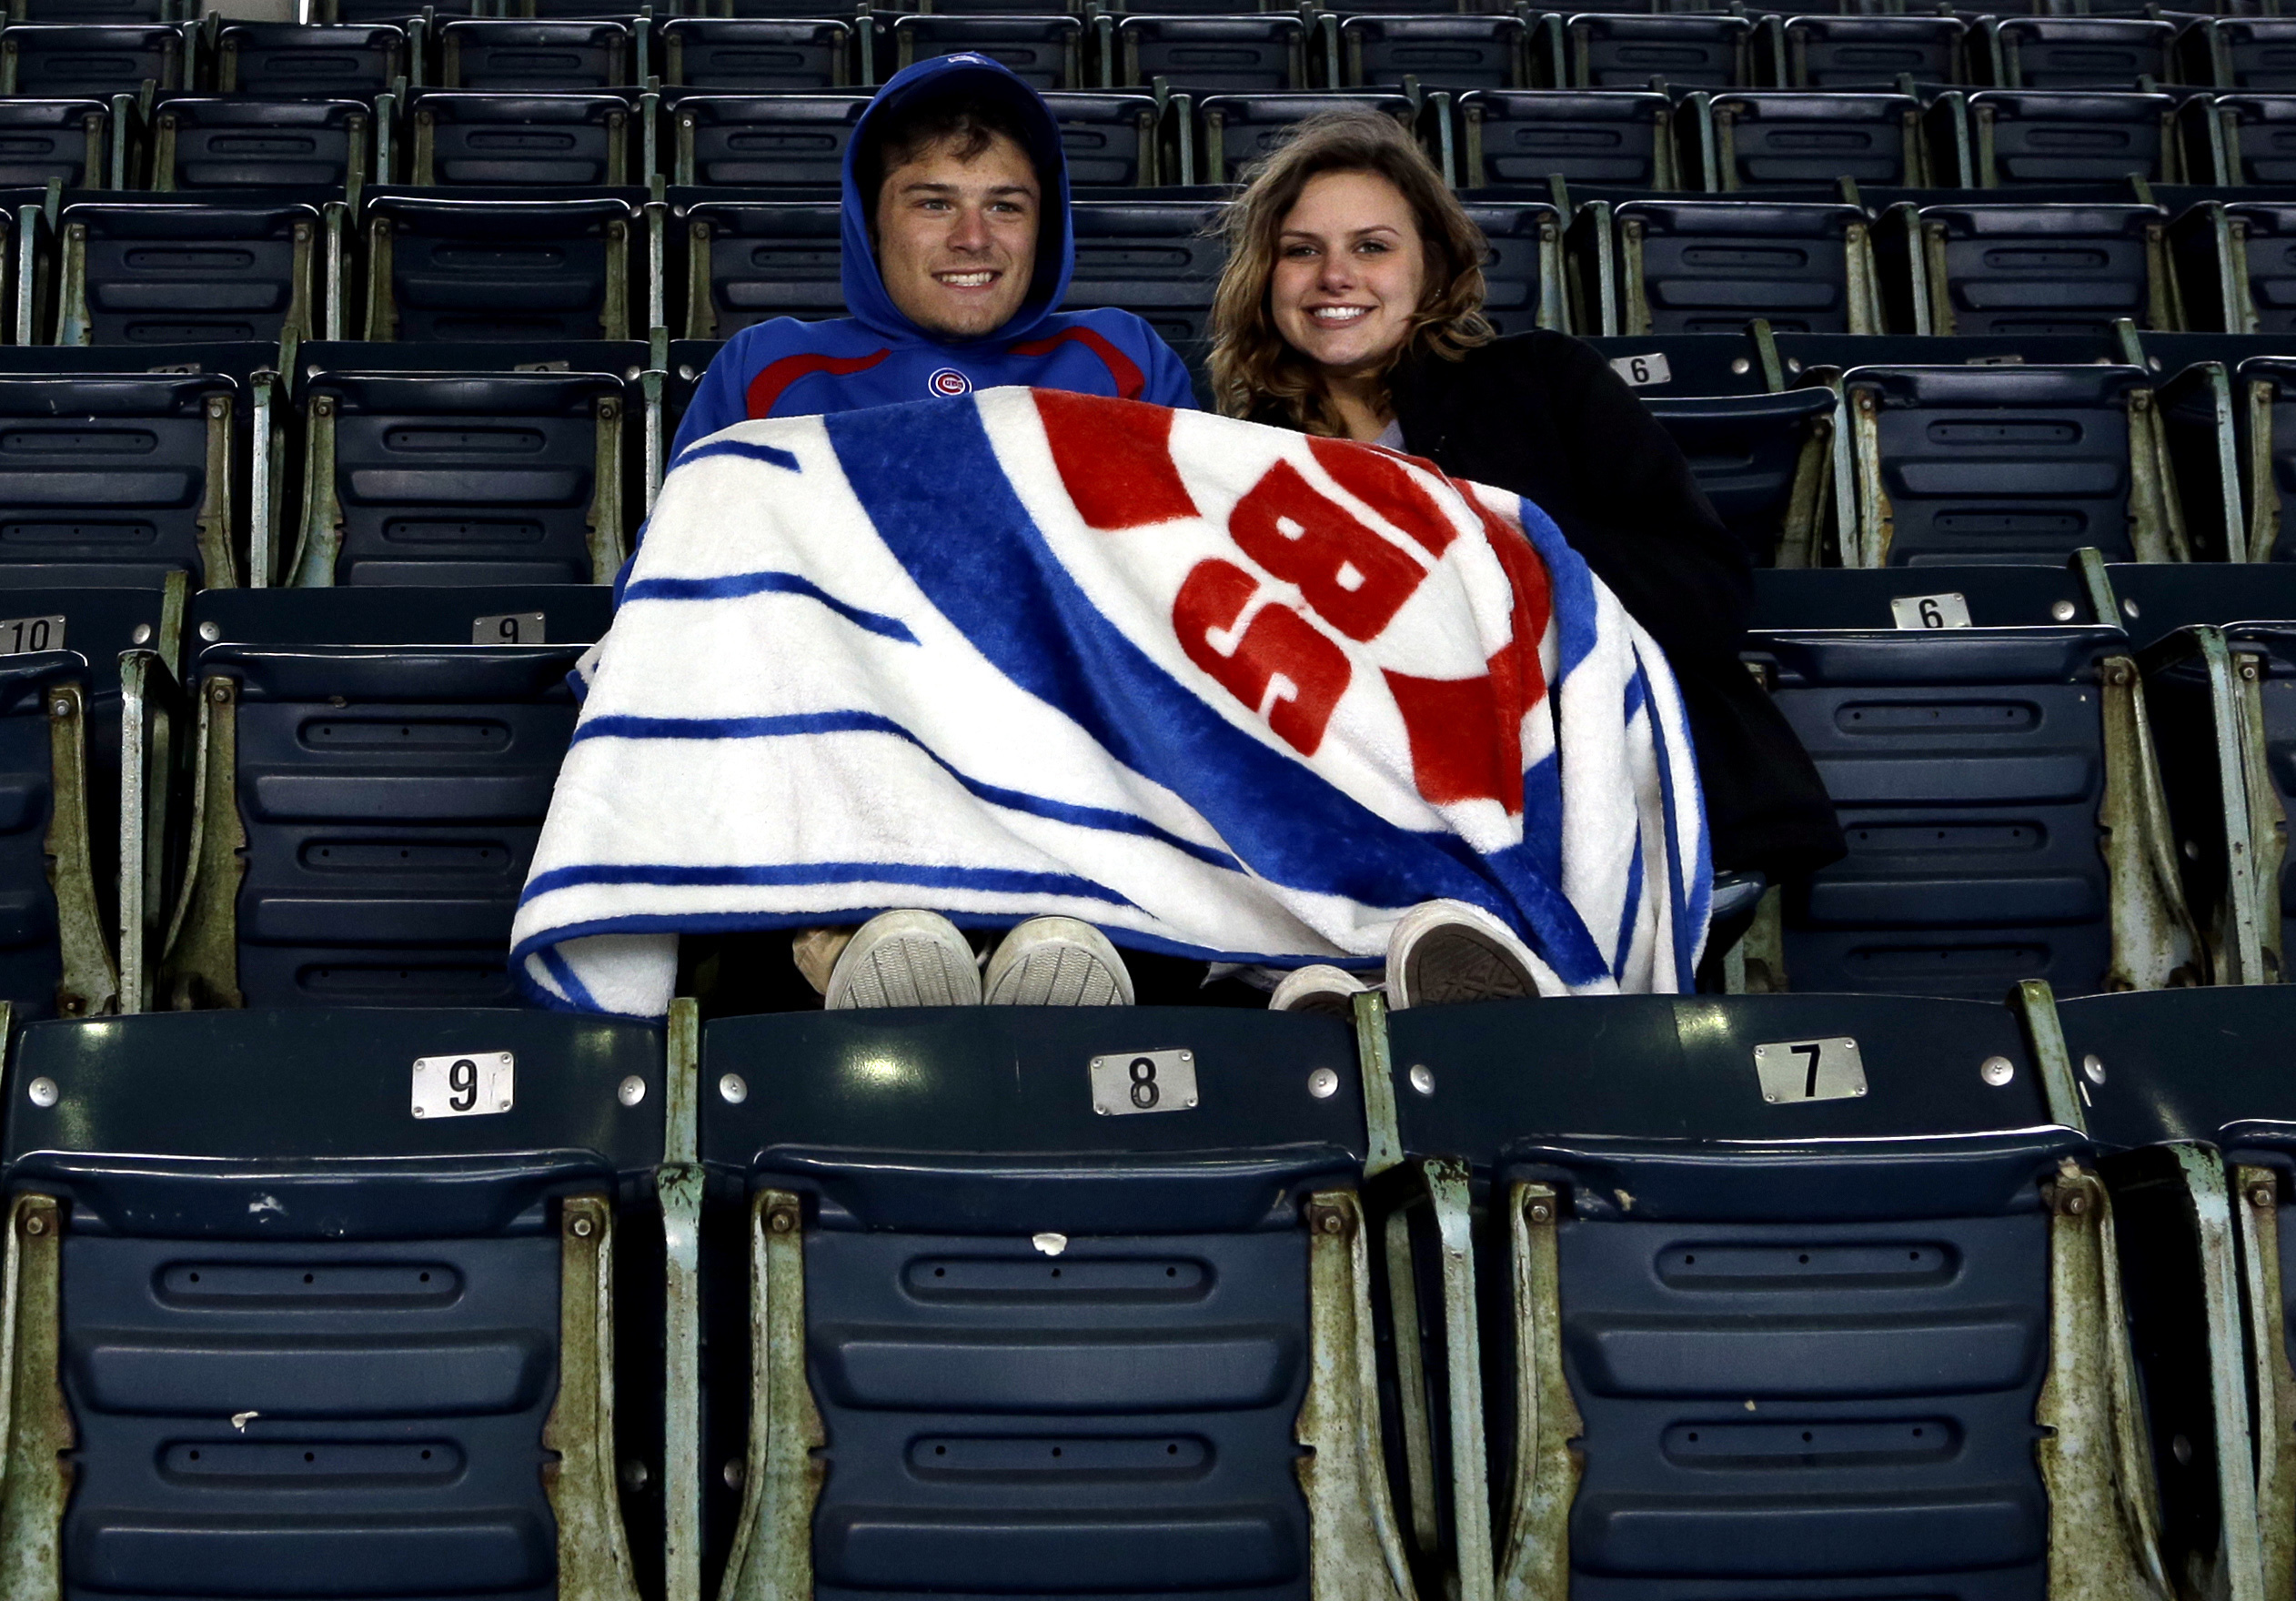 Nick Arthur, left, Nicole Weber sit as they wait for a baseball game between the Milwaukee Brewers and the Chicago Cubs on Wednesday, April 27, 2016, in Chicago. (AP Photo/Nam Y. Huh)